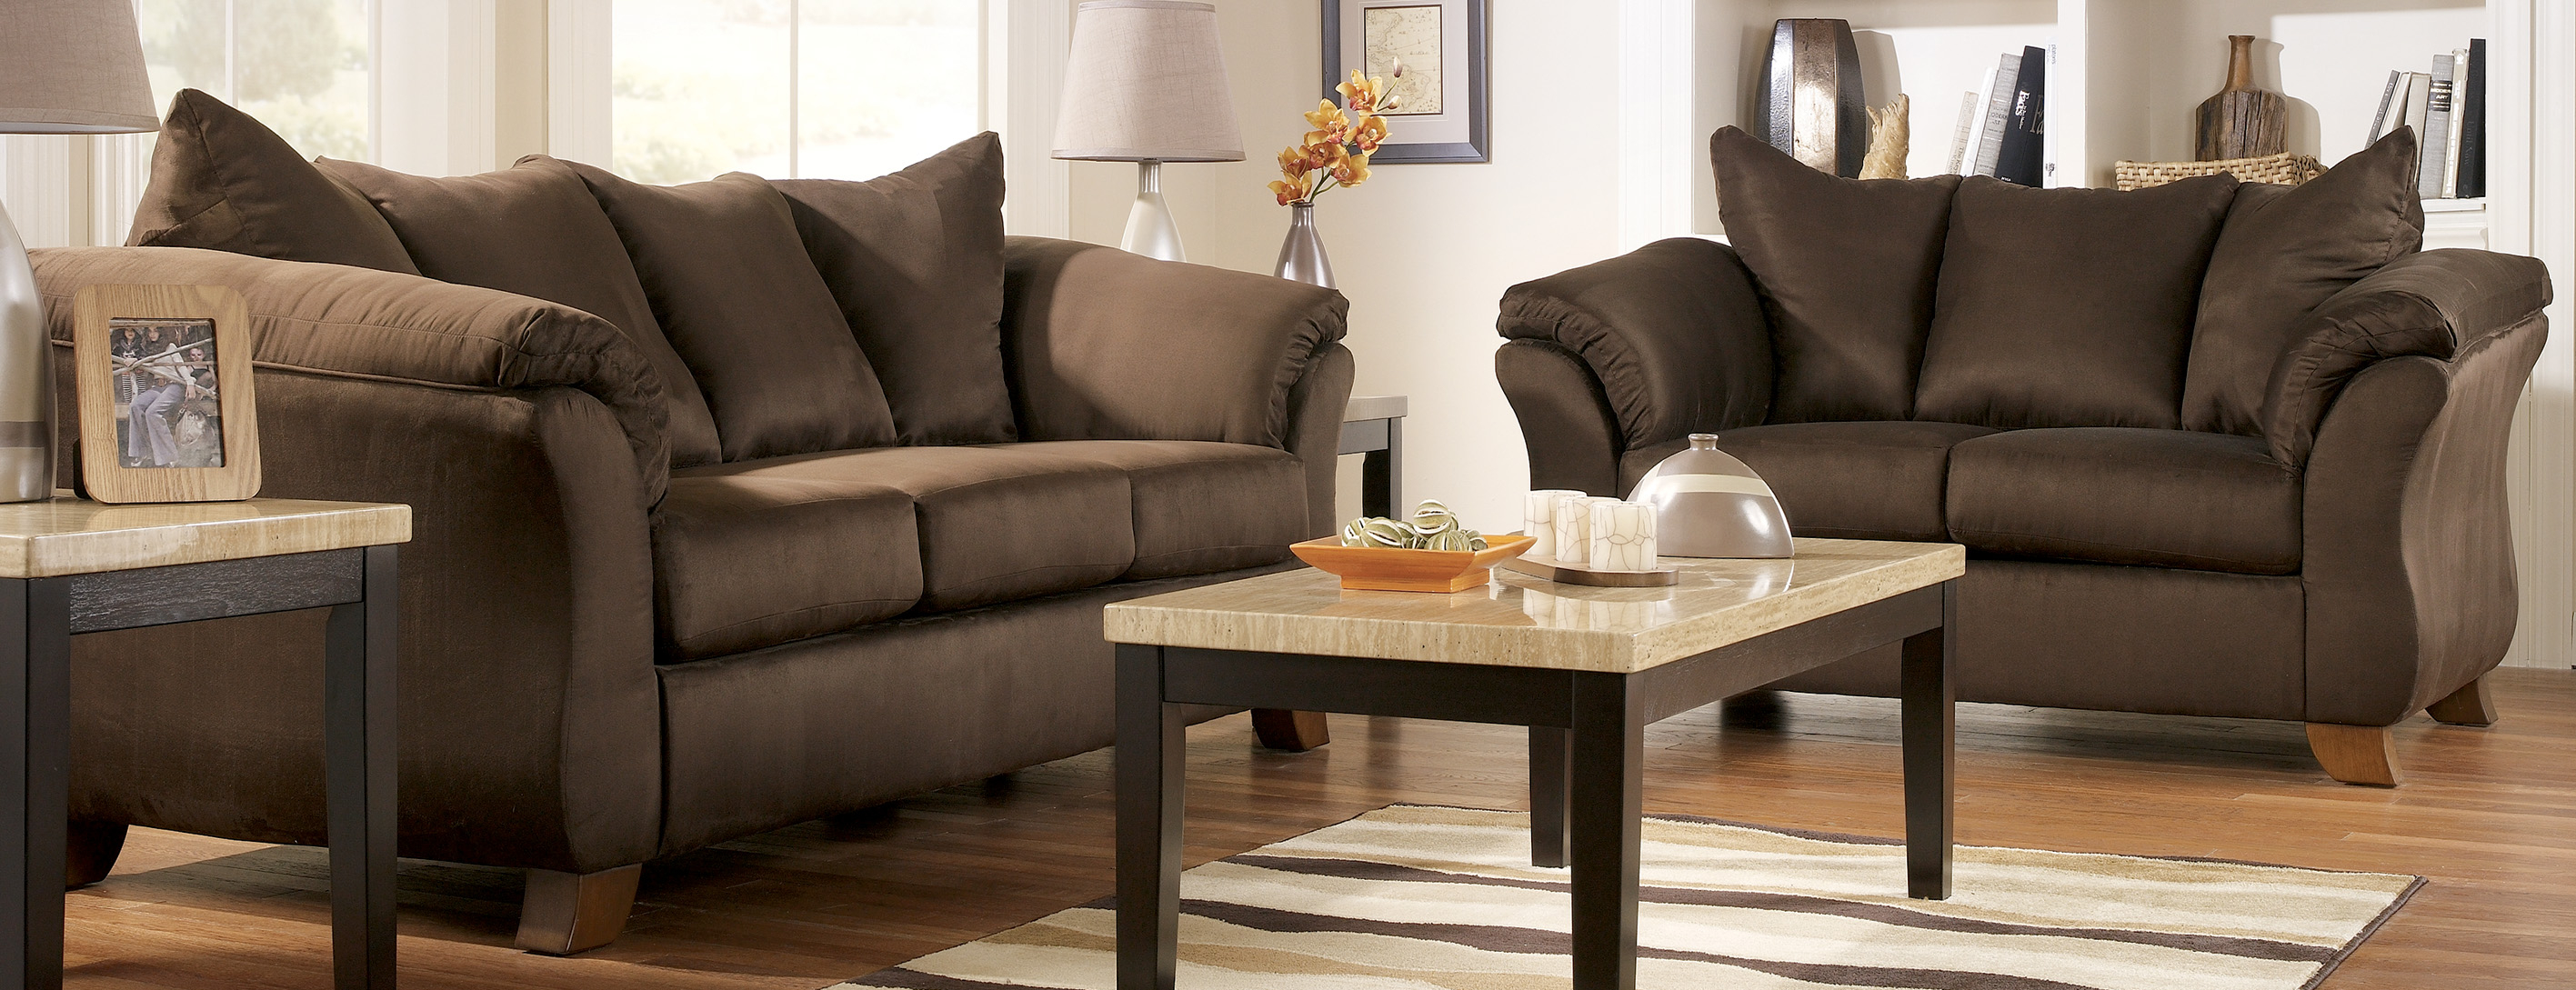 Clever Living Room Set Under 500 Simple Ideas Living Room Elegant pertaining to Cheap Living Room Set Under 500